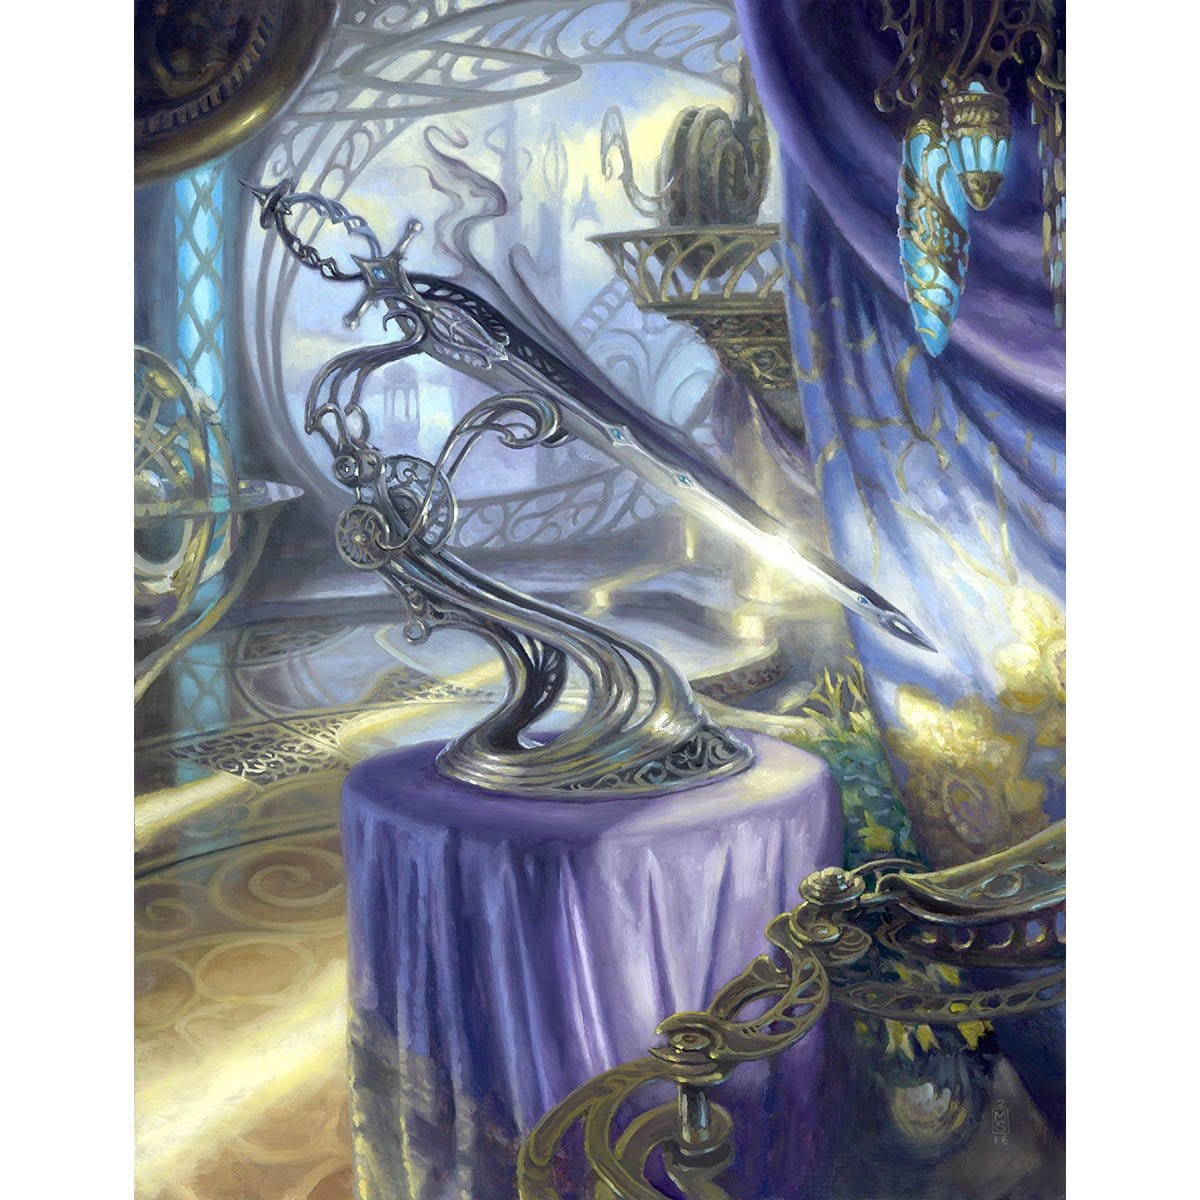 Sword of Light and Shadow Print - Print - Original Magic Art - Accessories for Magic the Gathering and other card games